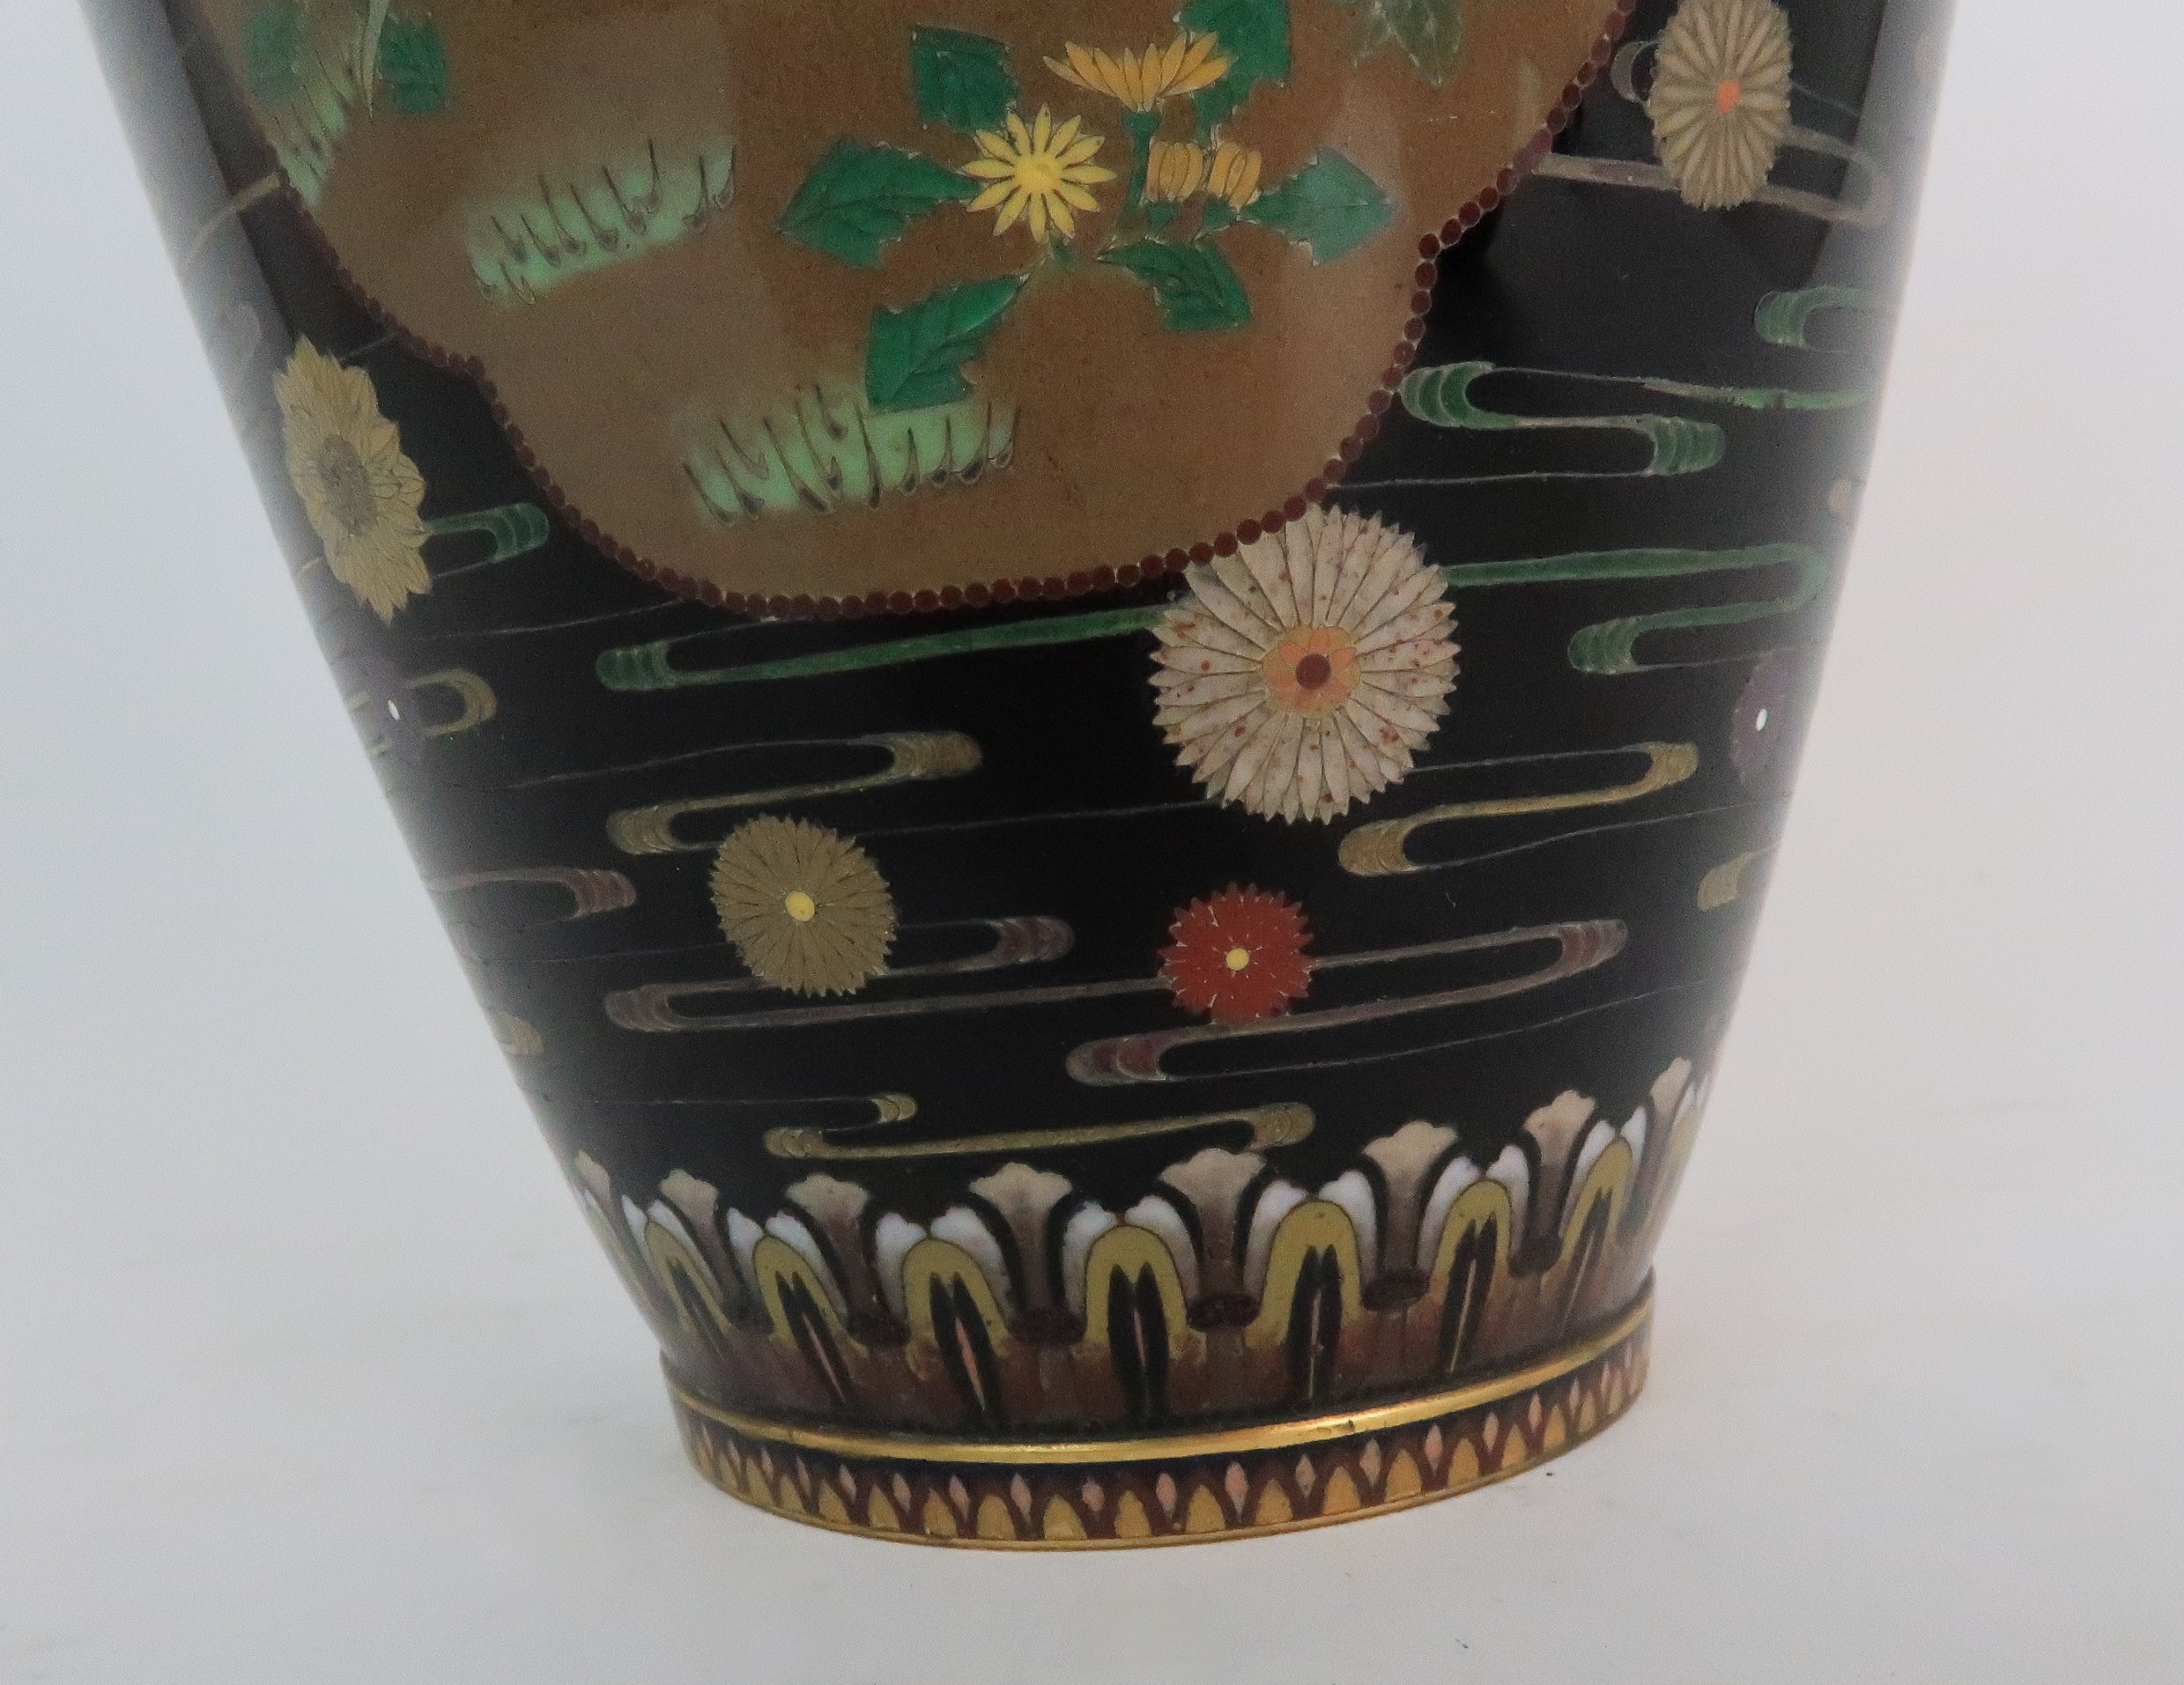 A JAPANESE CLOISONNE BALUSTER VASE finely decorated with panels of birds, butterflies, plants and - Image 10 of 15